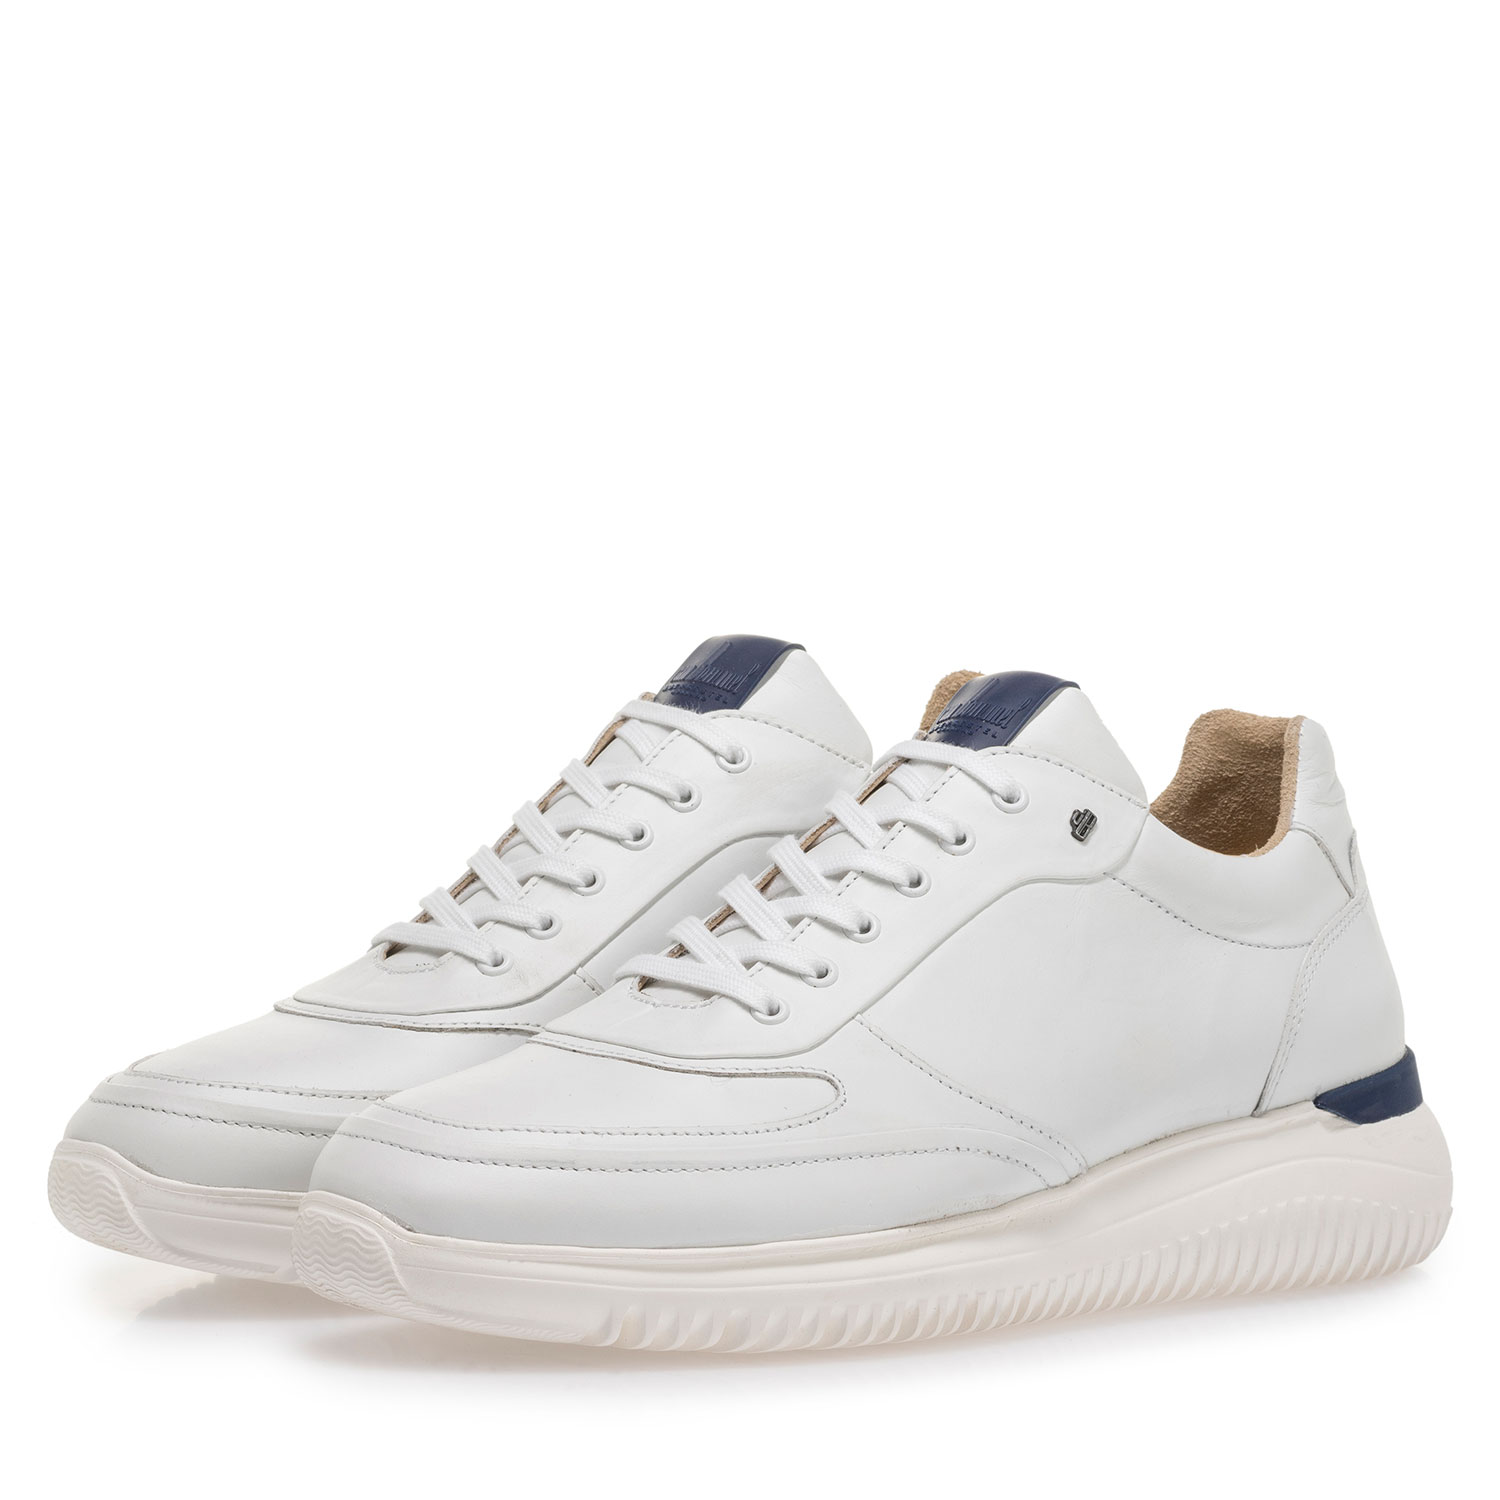 16302/07 - White calf leather sneaker